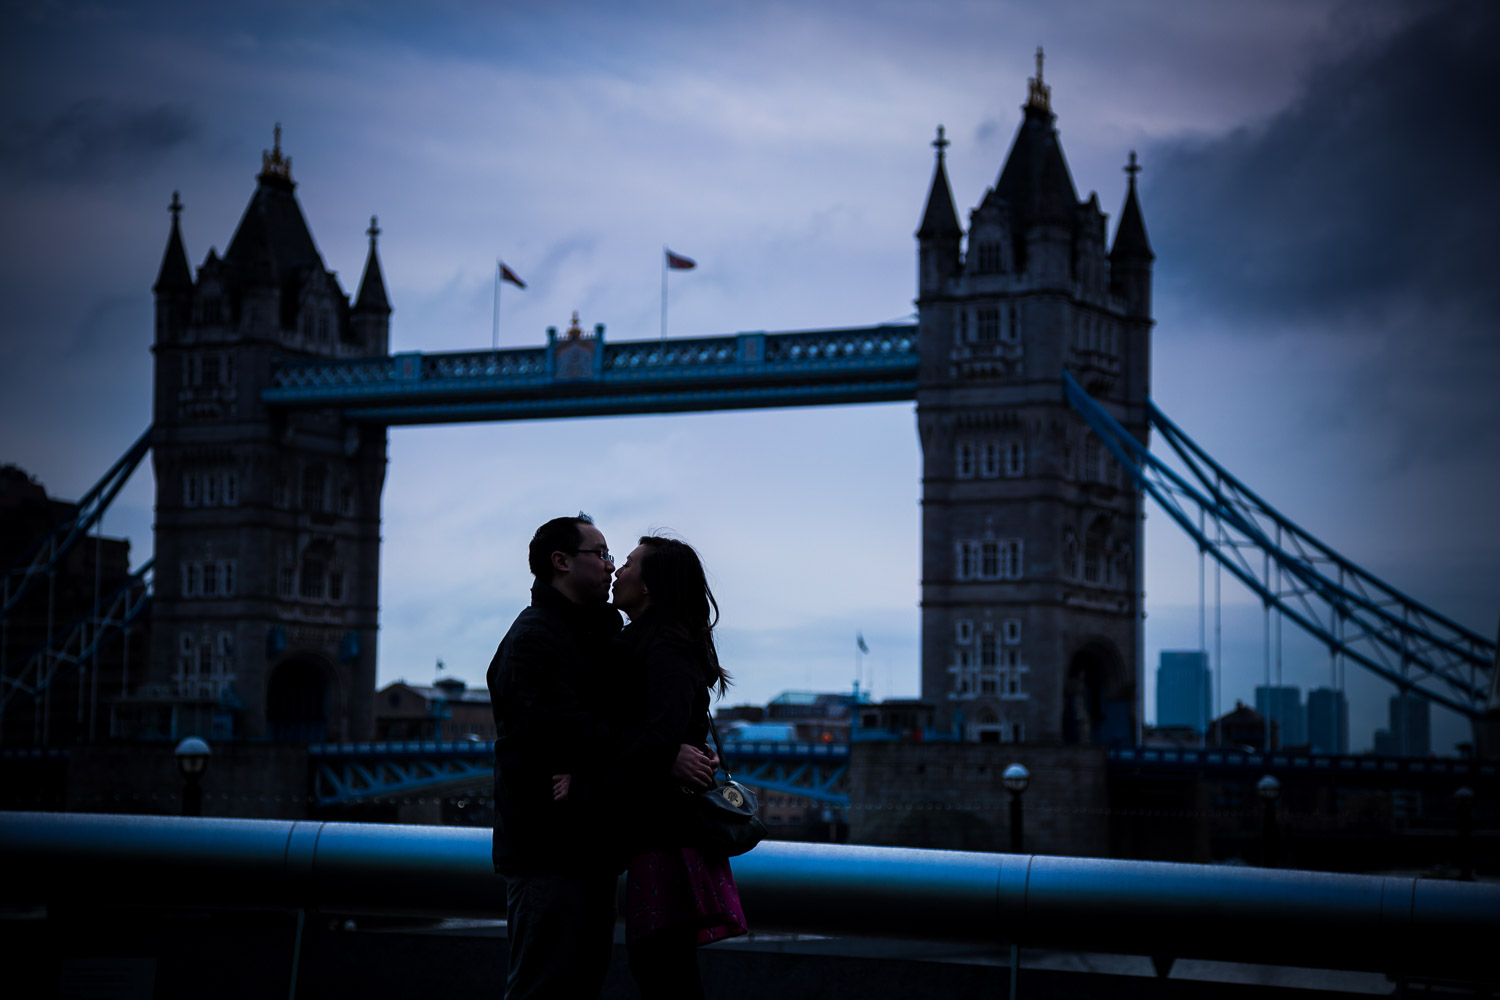 pre-wedding-engagement-session-in-london-portchester-and-notting-hill-hampshire-wedding-photographer-20.jpg